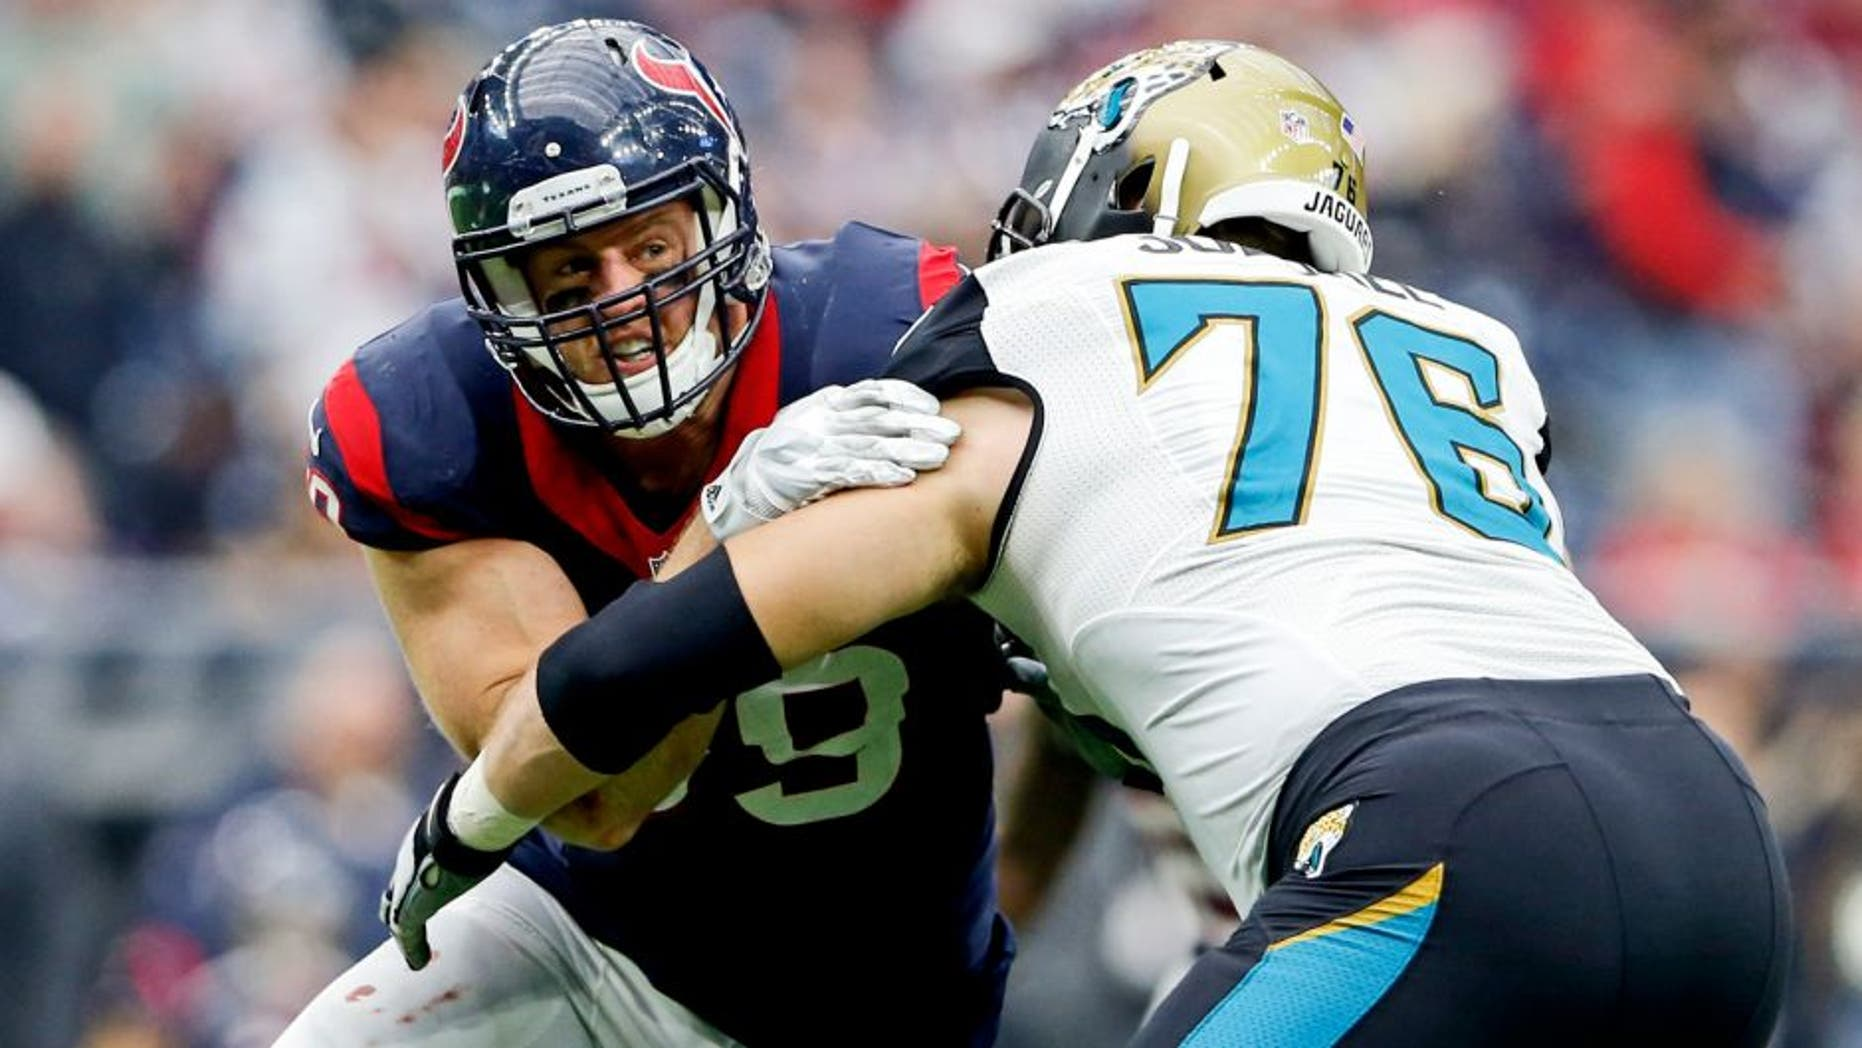 Jan 3, 2016; Houston, TX, USA; Houston Texans defensive end J.J. Watt (99) rushes against Jacksonville Jaguars tackle Luke Joeckel (76) during the game at NRG Stadium. Houston won 30-6. Mandatory Credit: Kevin Jairaj-USA TODAY Sports